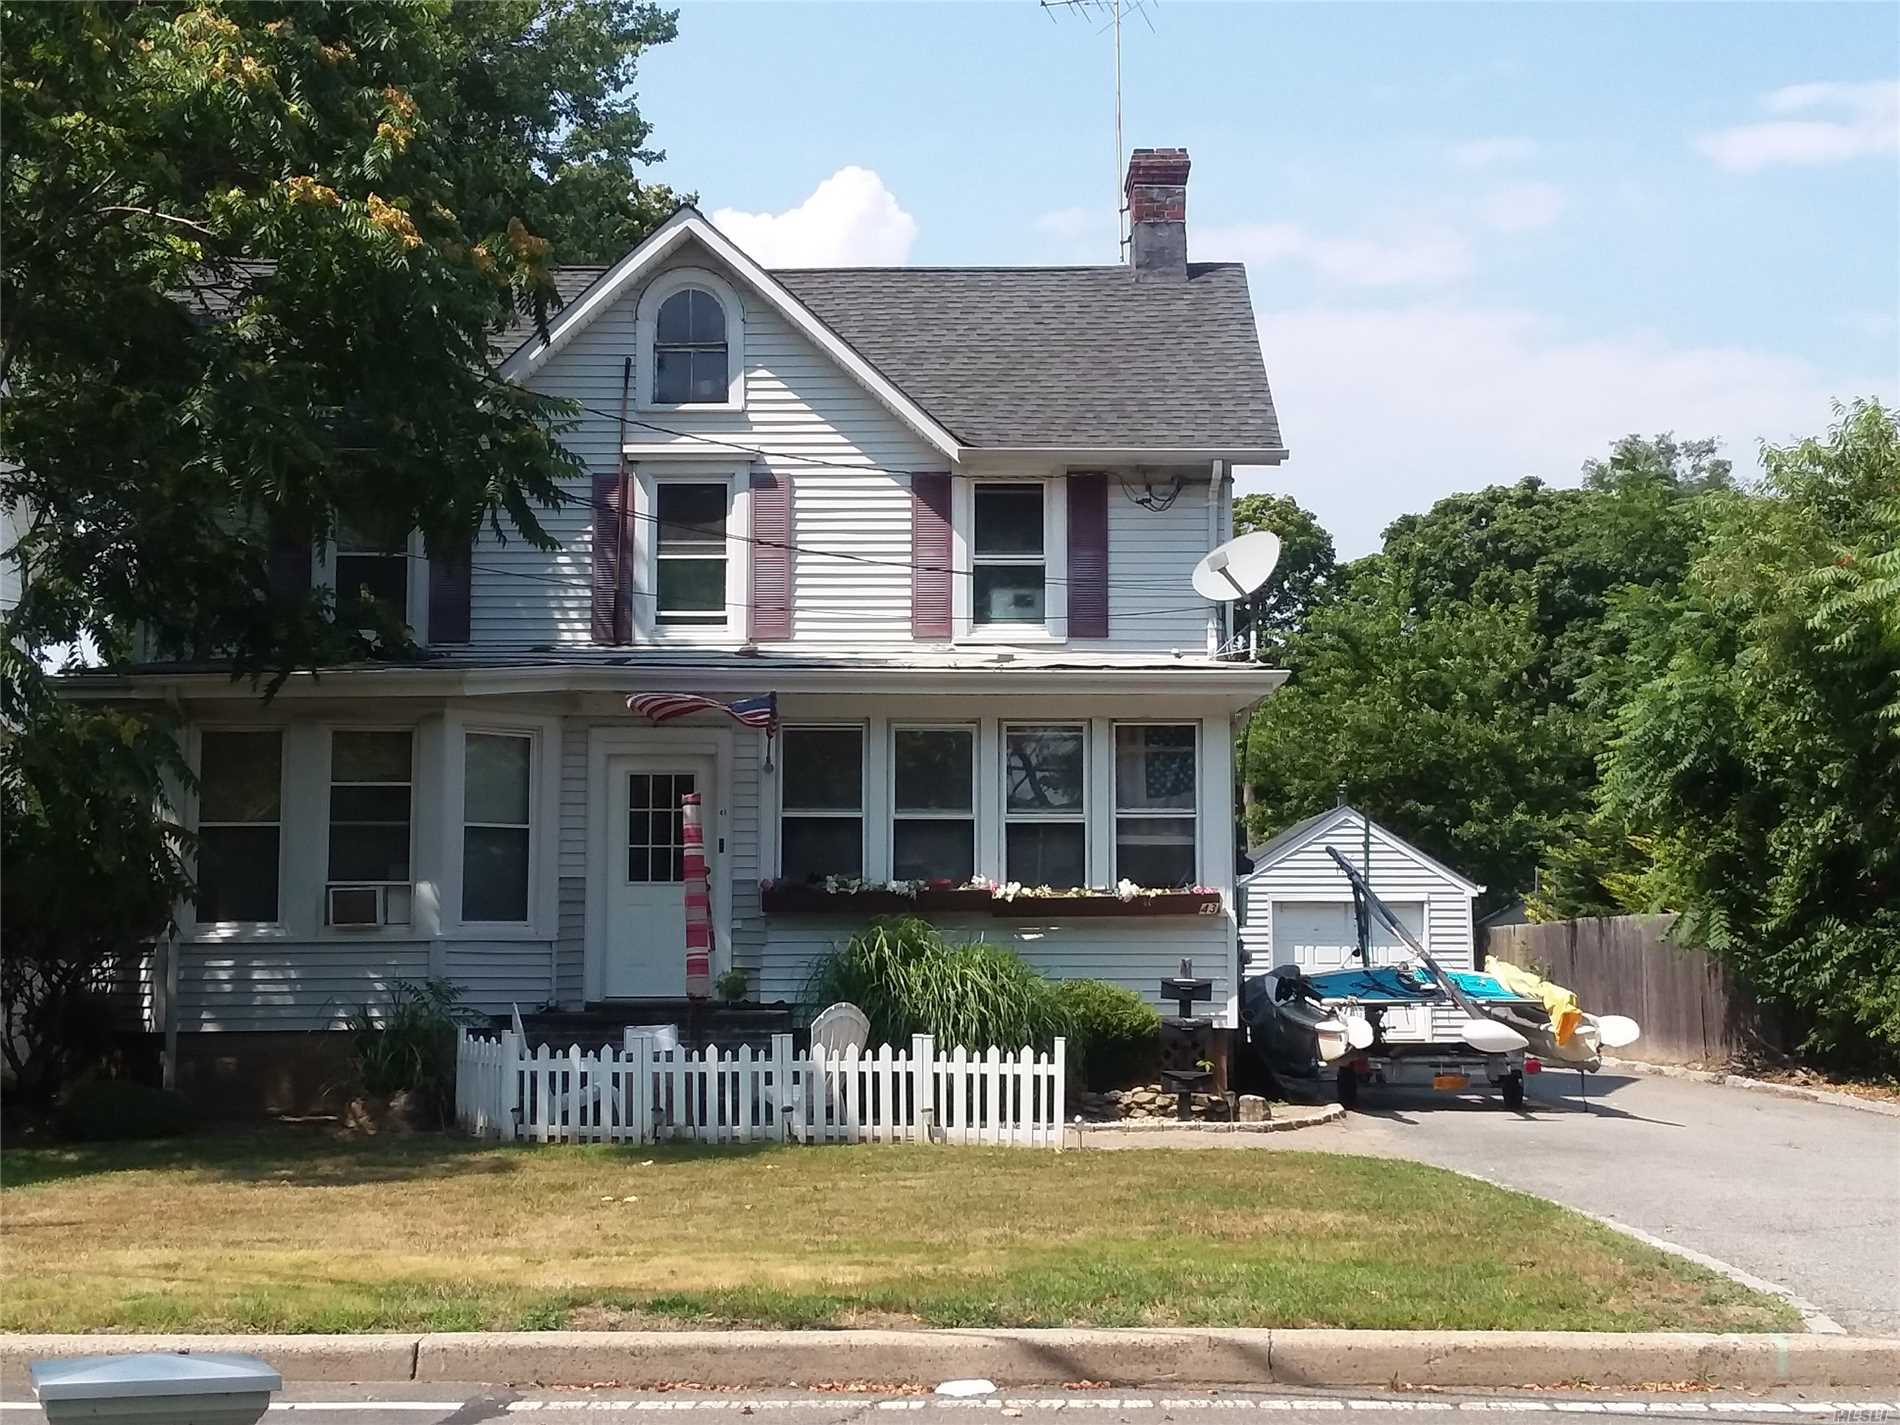 Large Legal 2 Family Colonial By Co In The Heart Of Babylon Village. Rare Opportunity! New Owners Must Reapply For 3rd Rental Unit Permit - Must See! Very Close To Lirr, Shops, And Restaurants.